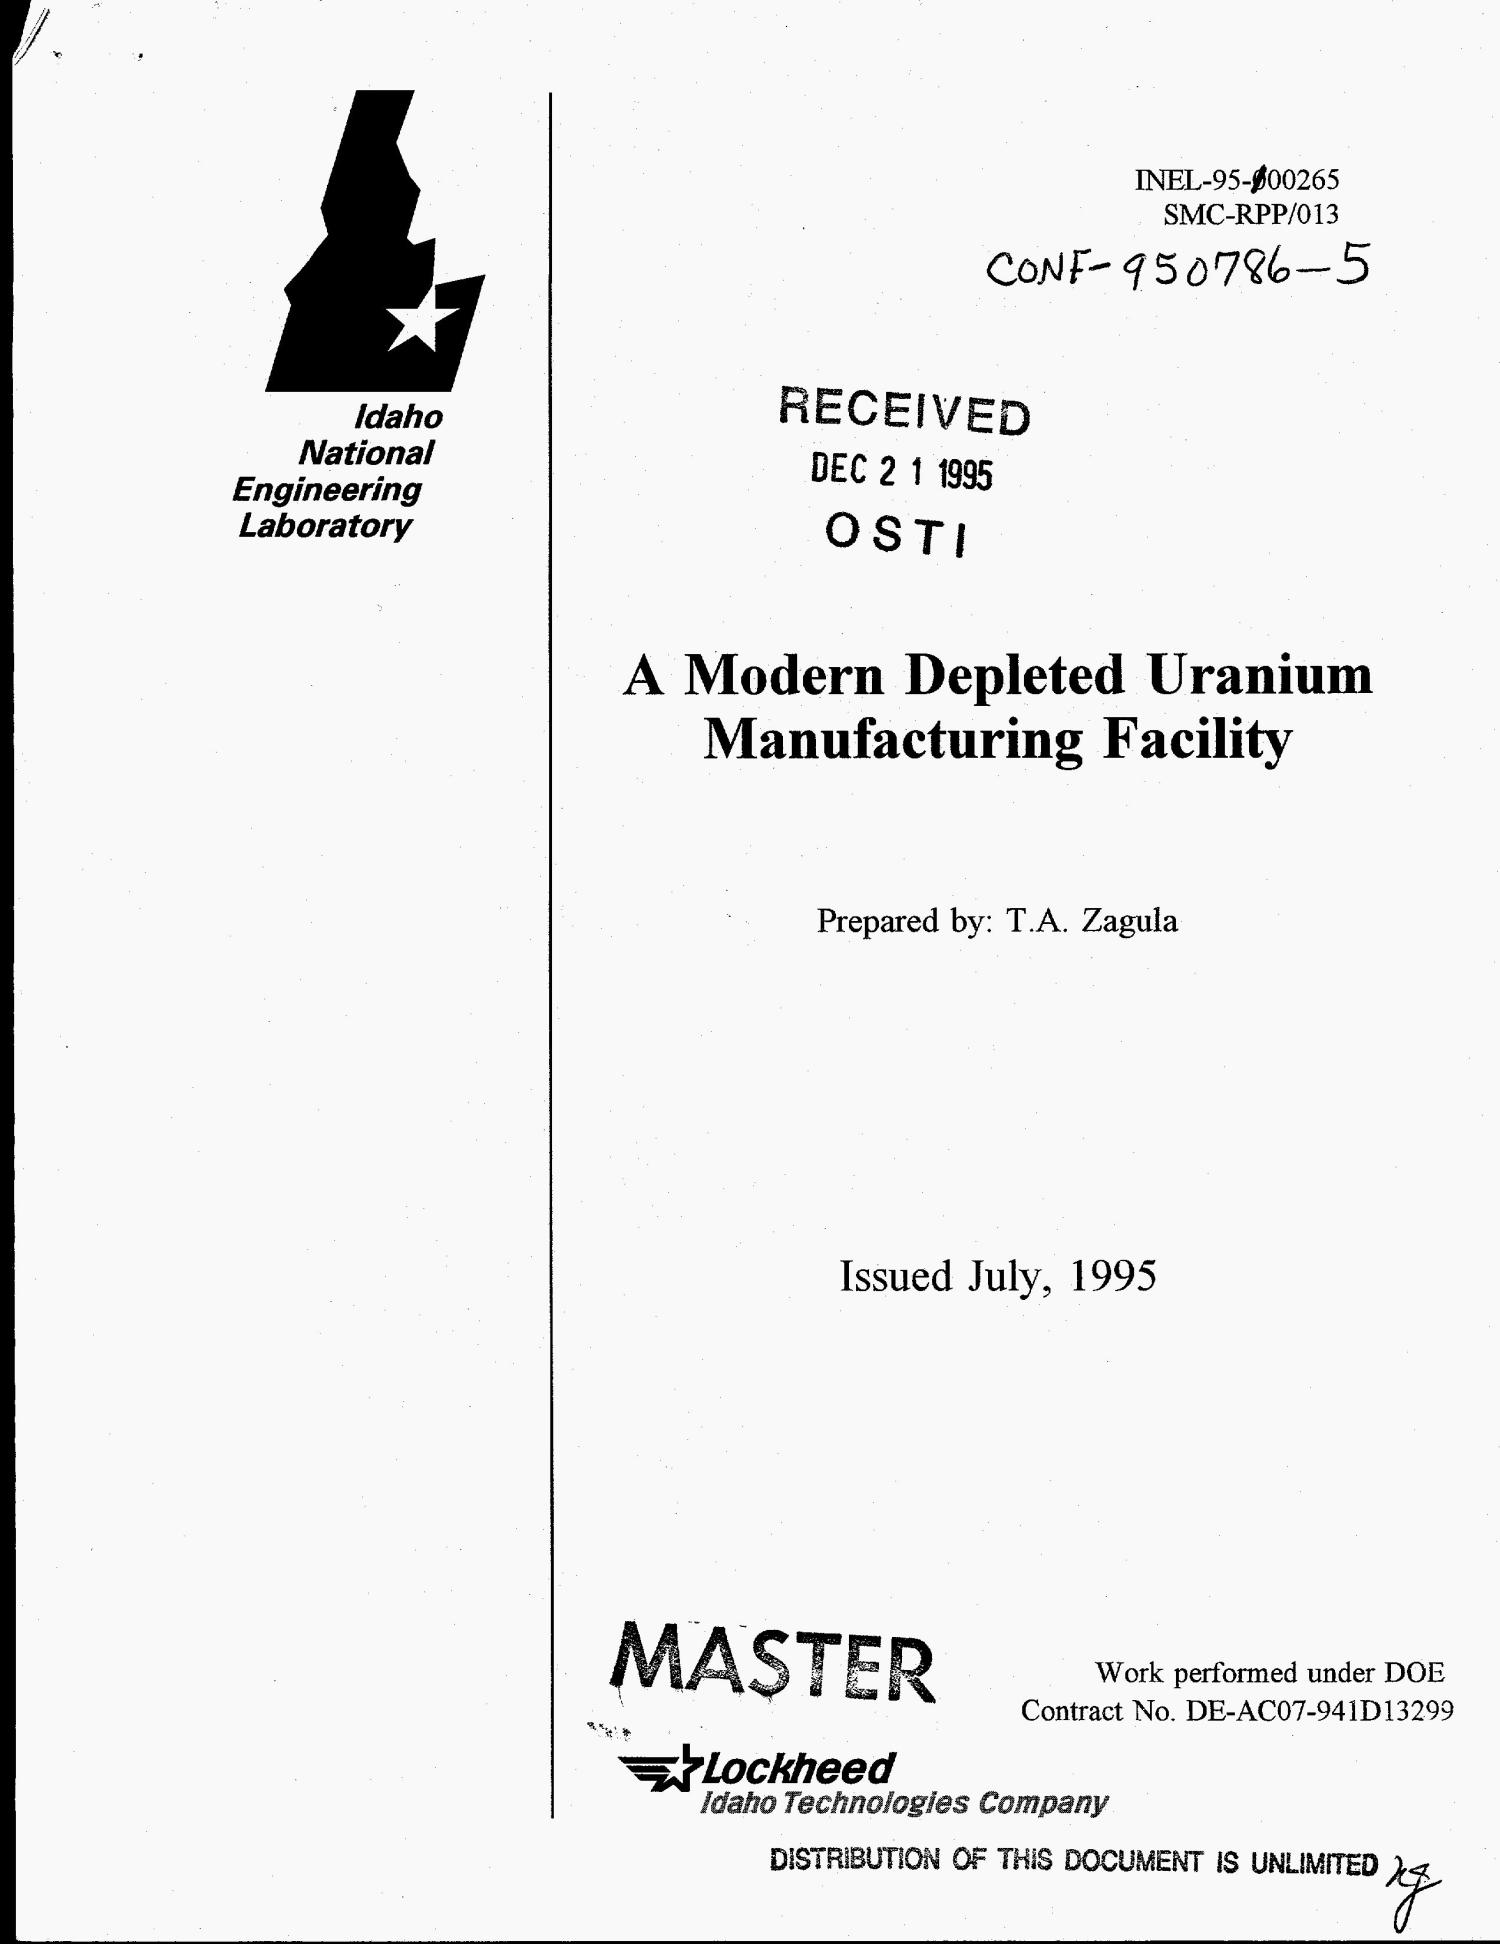 A modern depleted uranium manufacturing facility                                                                                                      [Sequence #]: 1 of 11